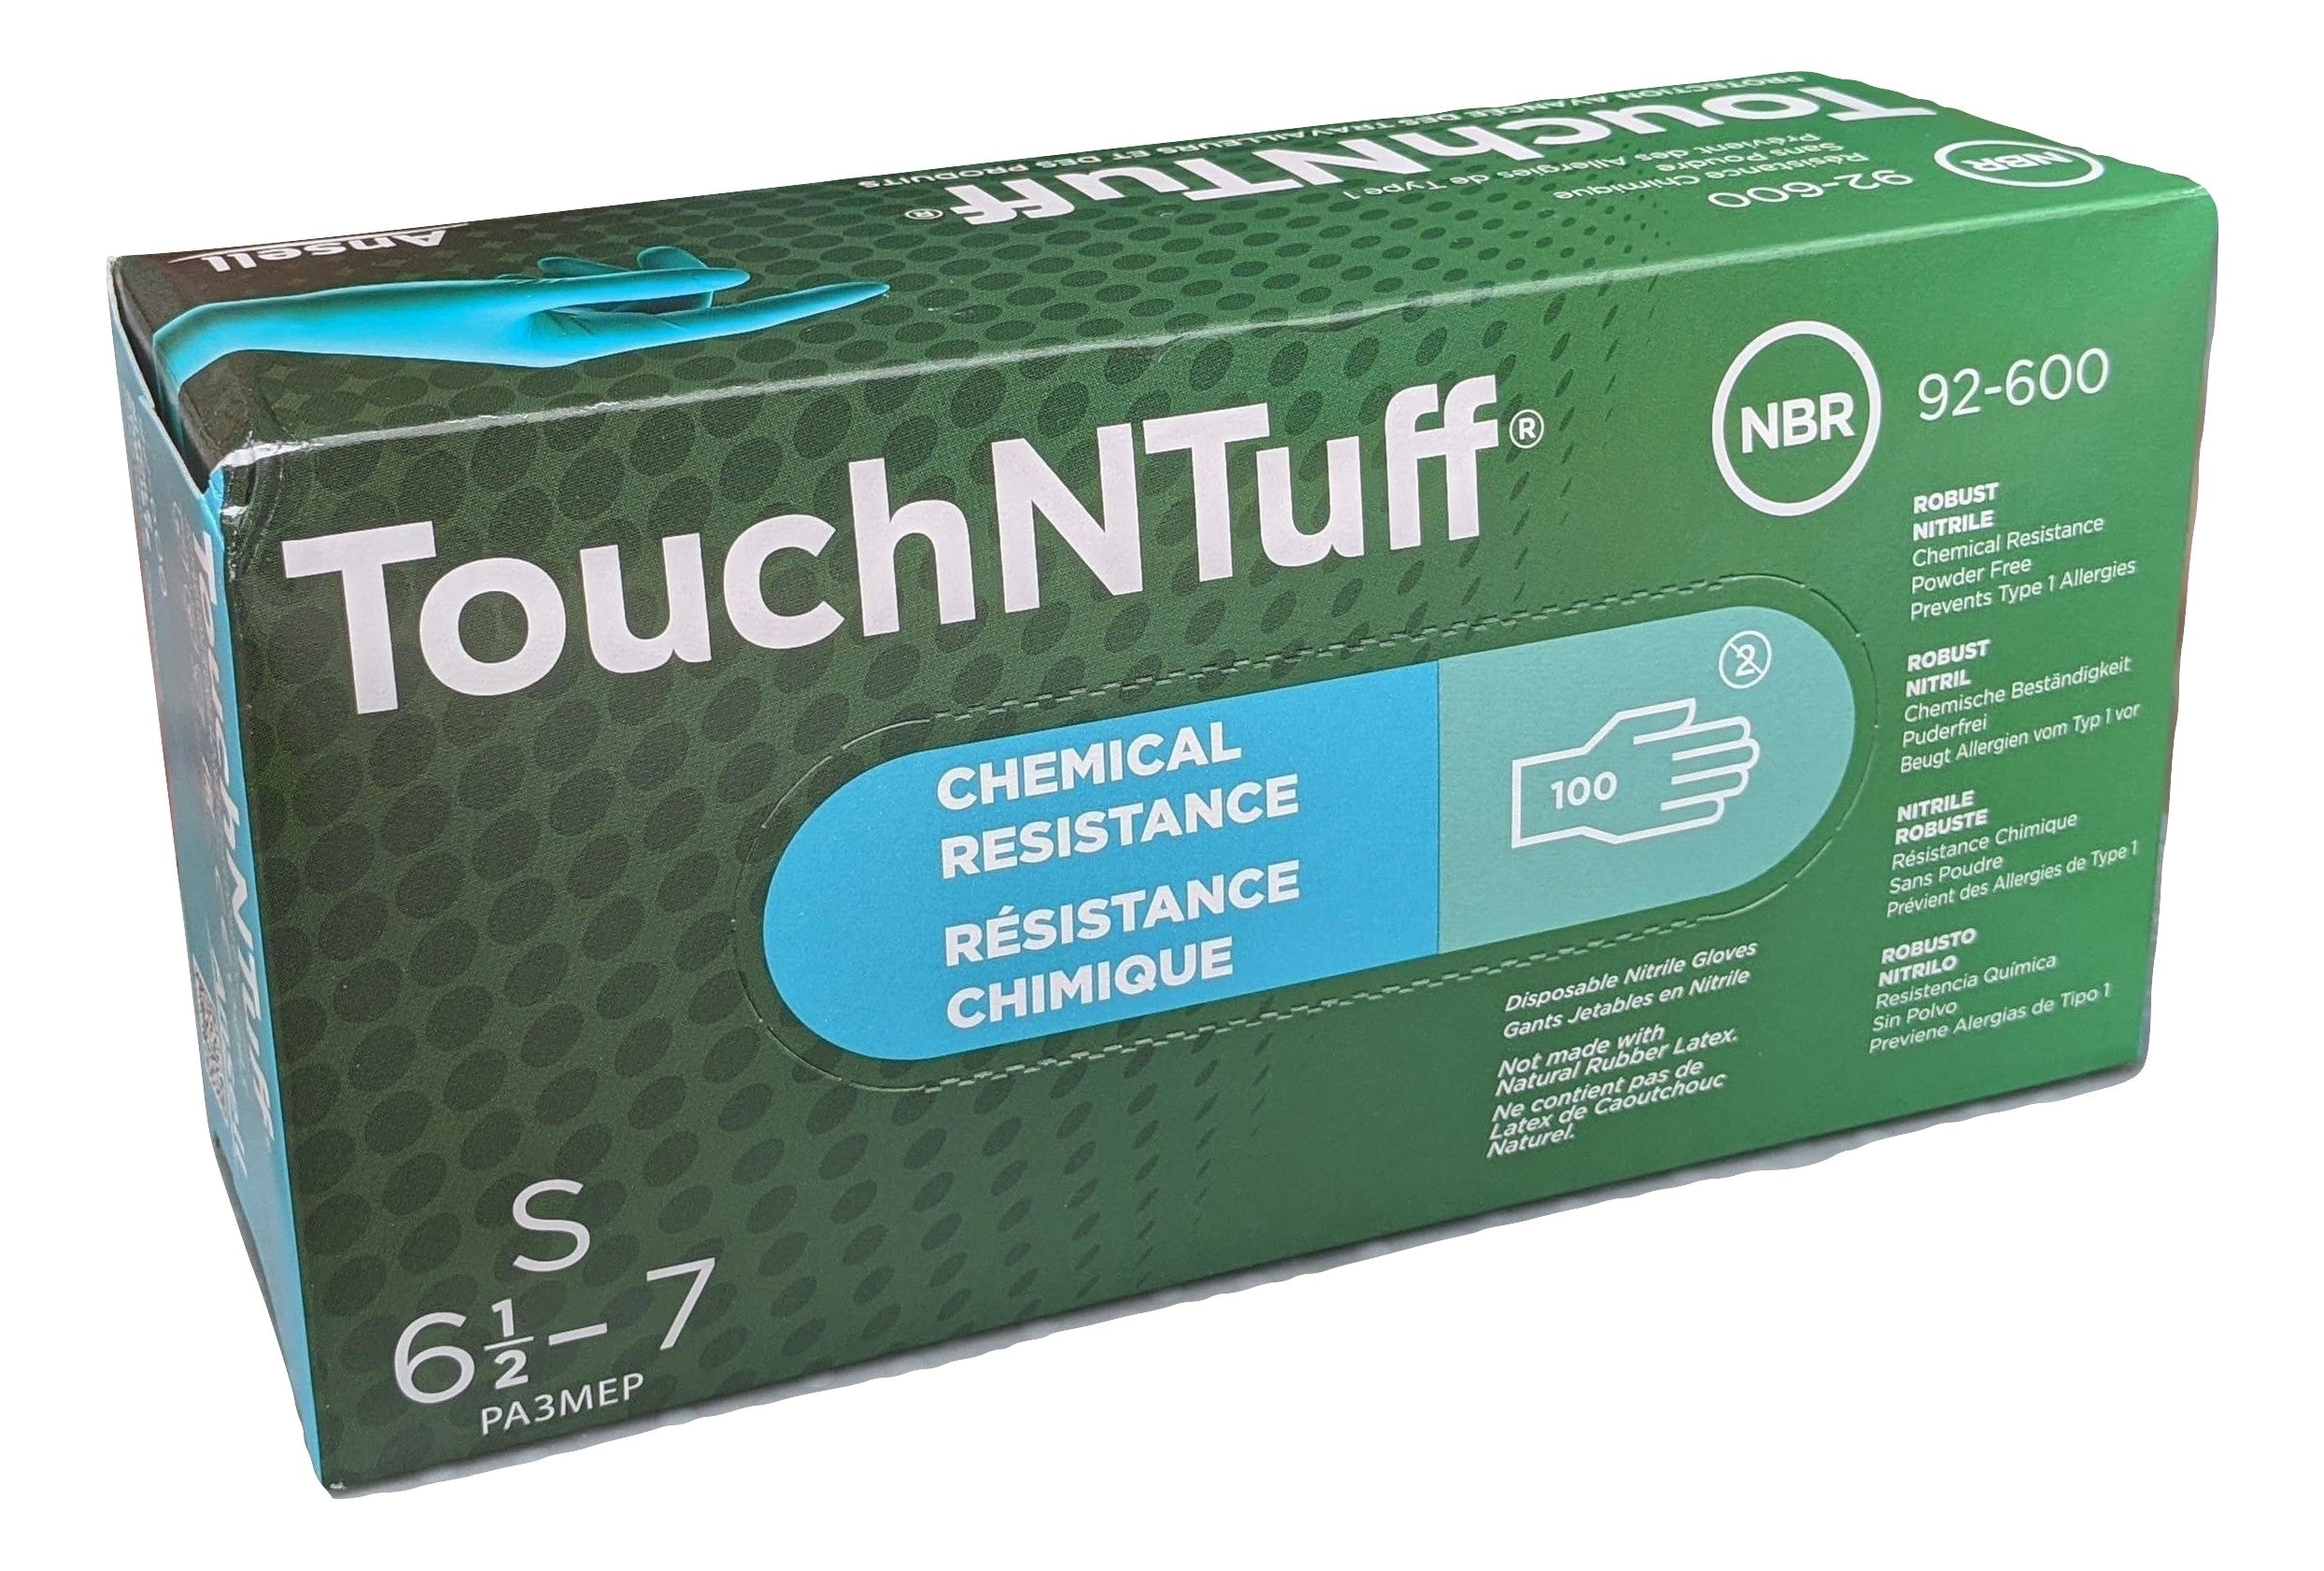 ANSELL TouchNTuff 92-600-S Chemical Resistant Nitrile powder free disposable gloves, Size SMALL - Case of 1000 (10 Boxes)